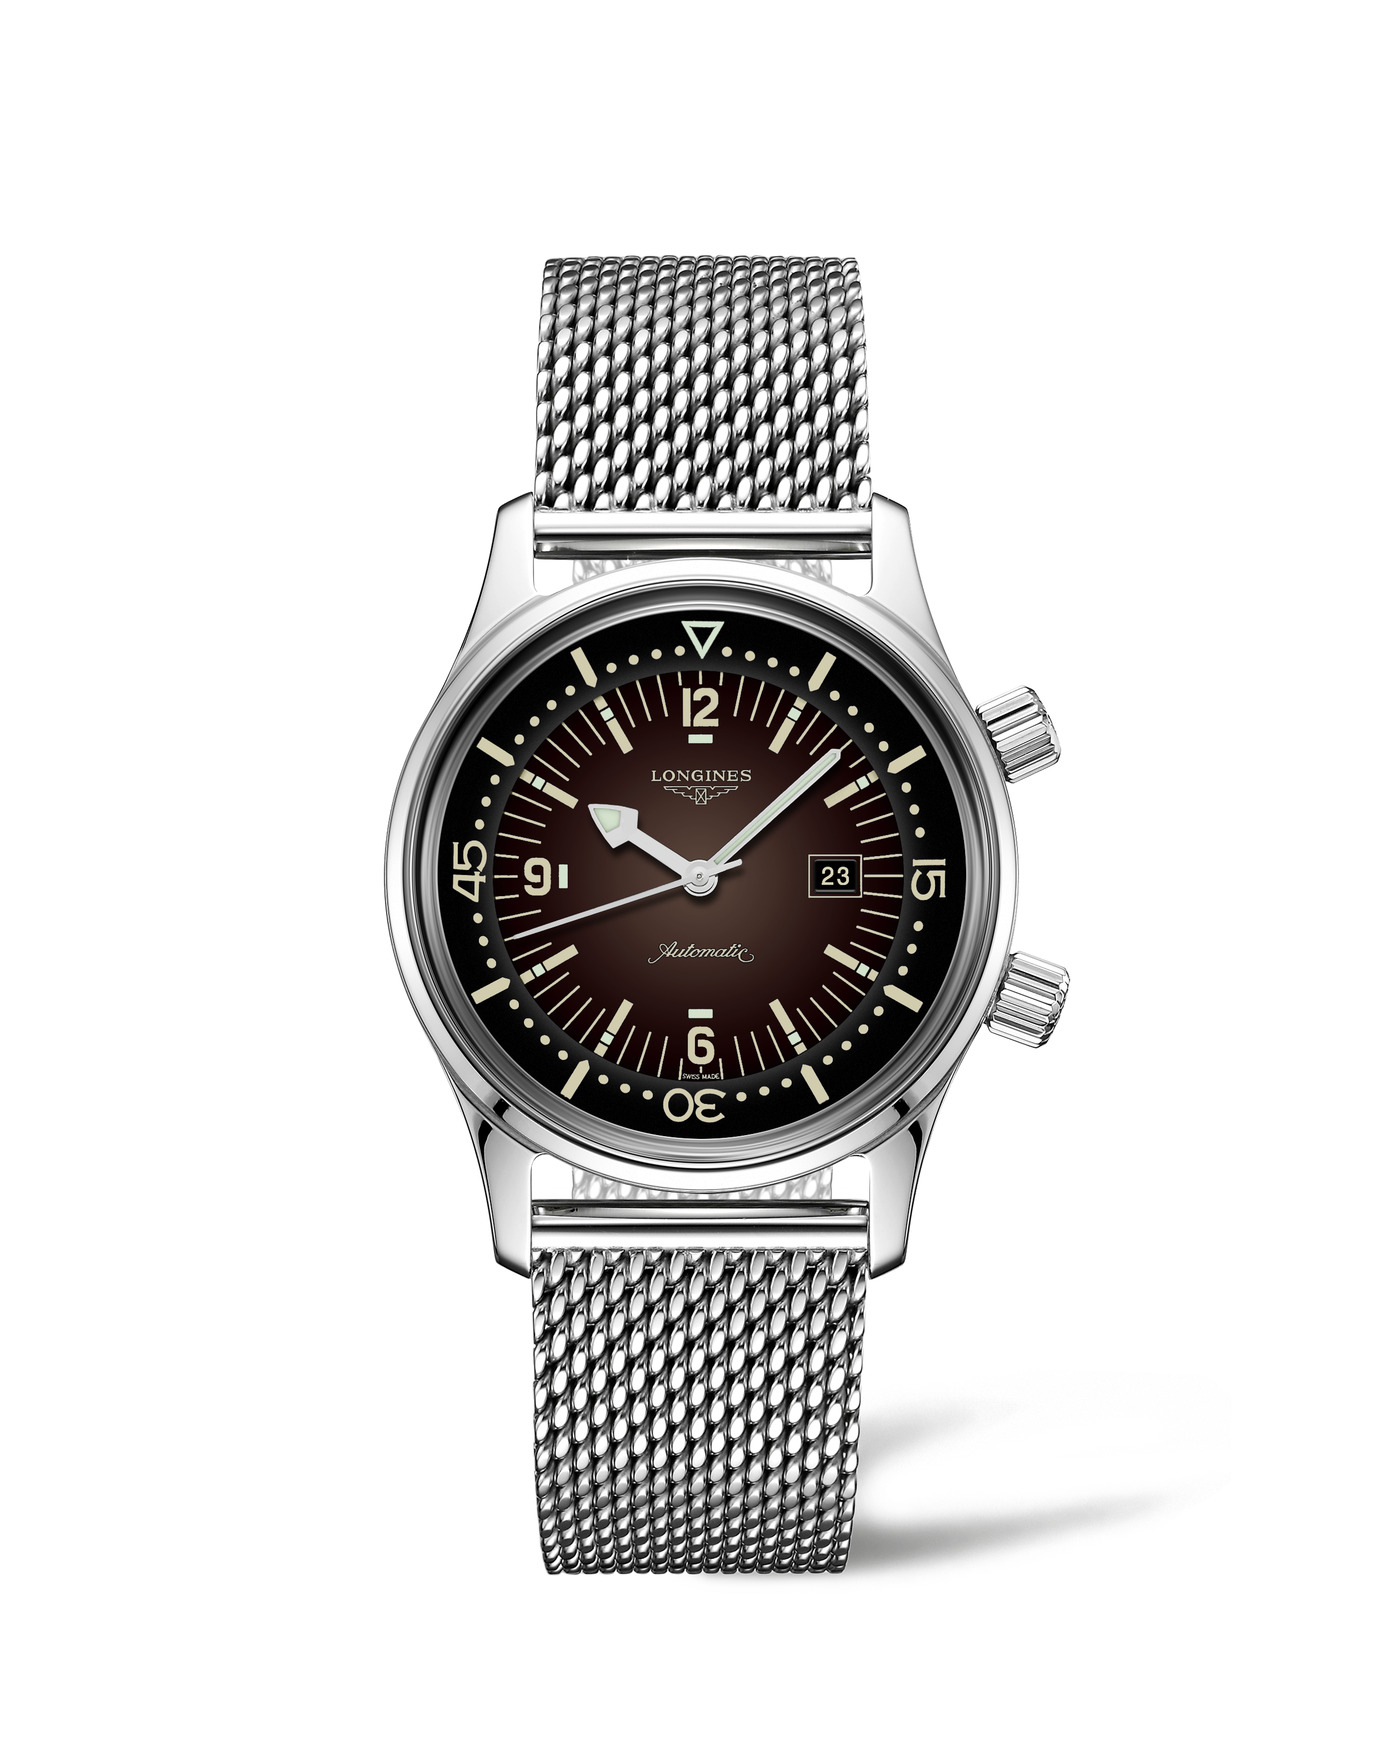 Longines The Longines Legend Diver Watch Watch 6